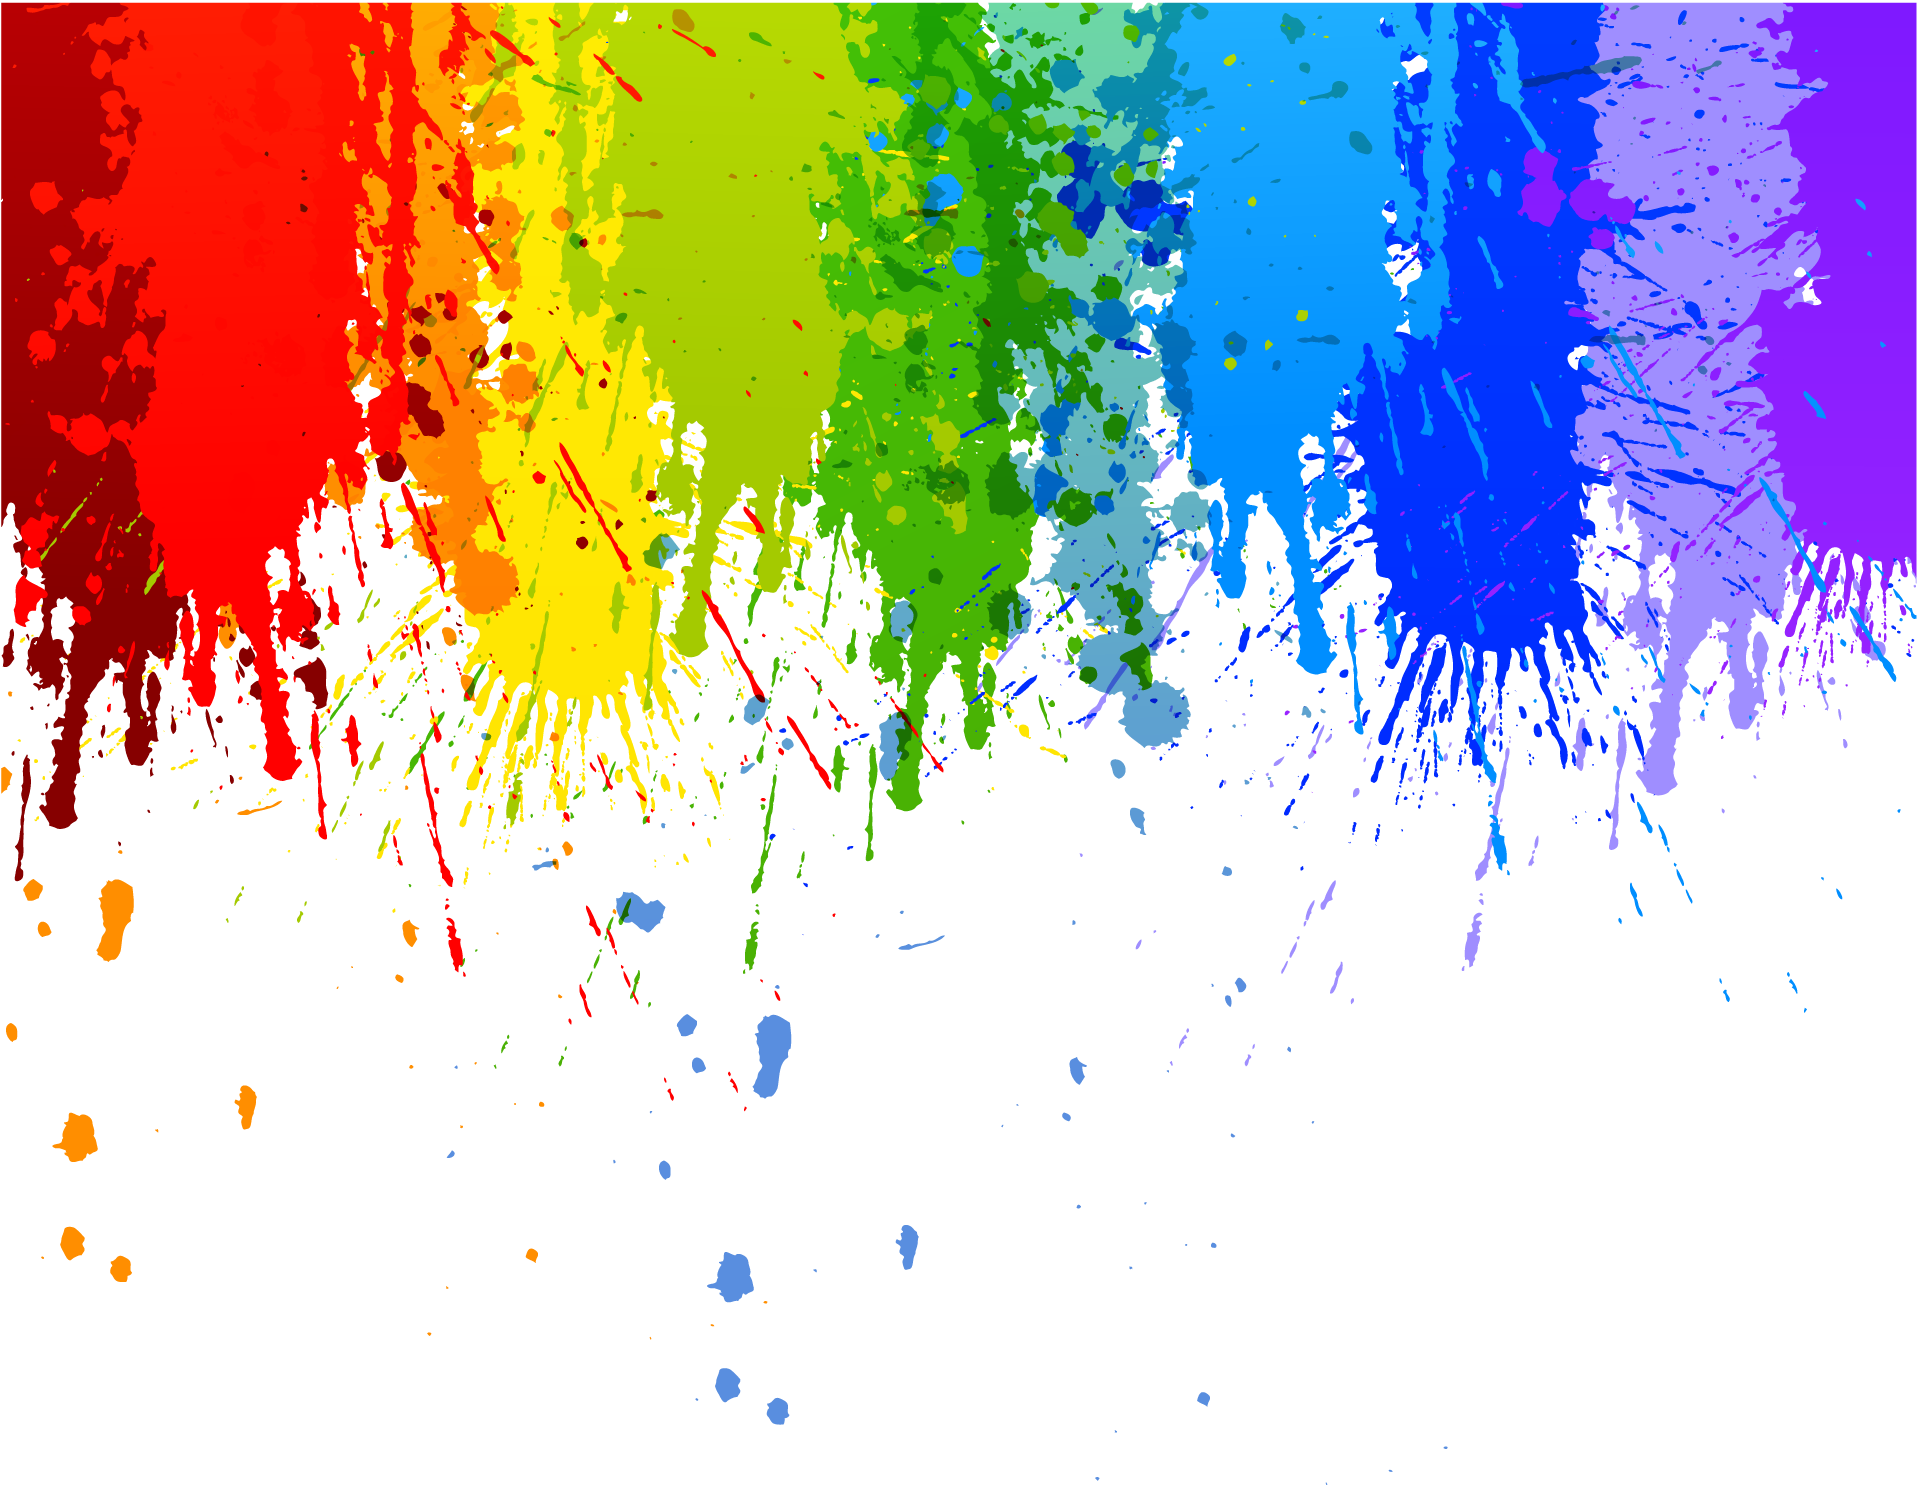 Png transparent background paint. Rainbow colour splash drip